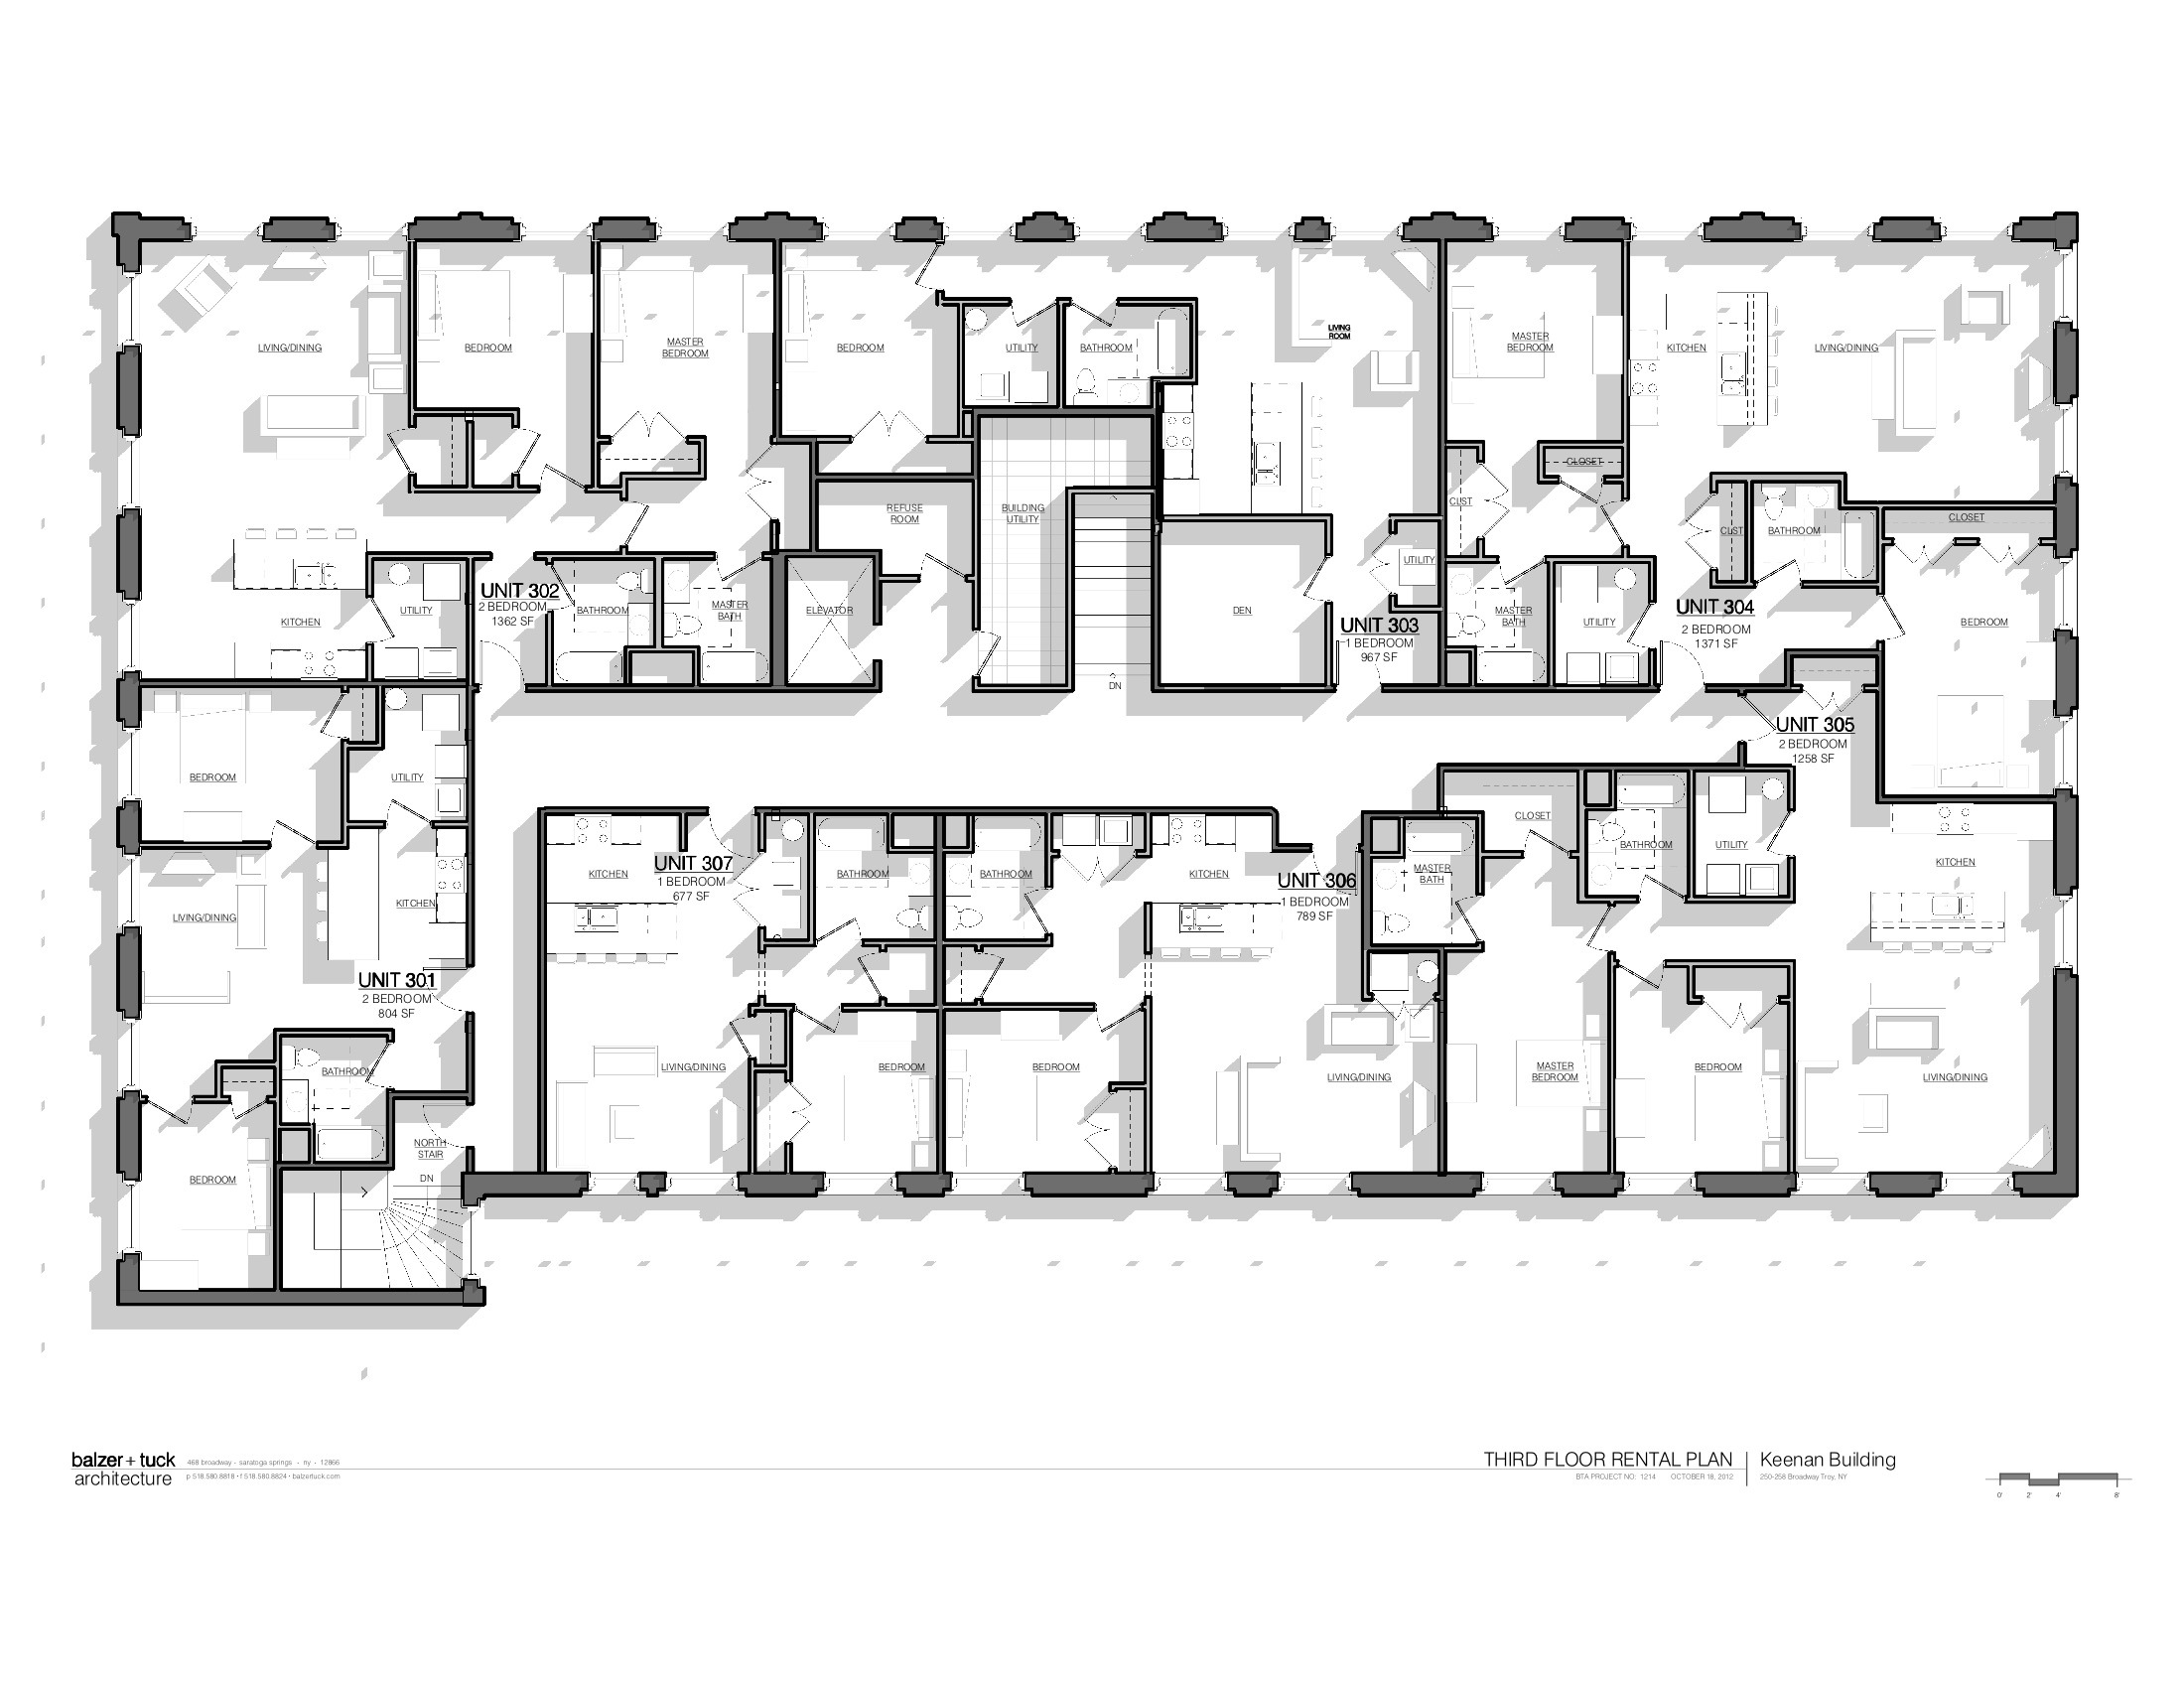 Keenan building floor plans troy new york Building plans